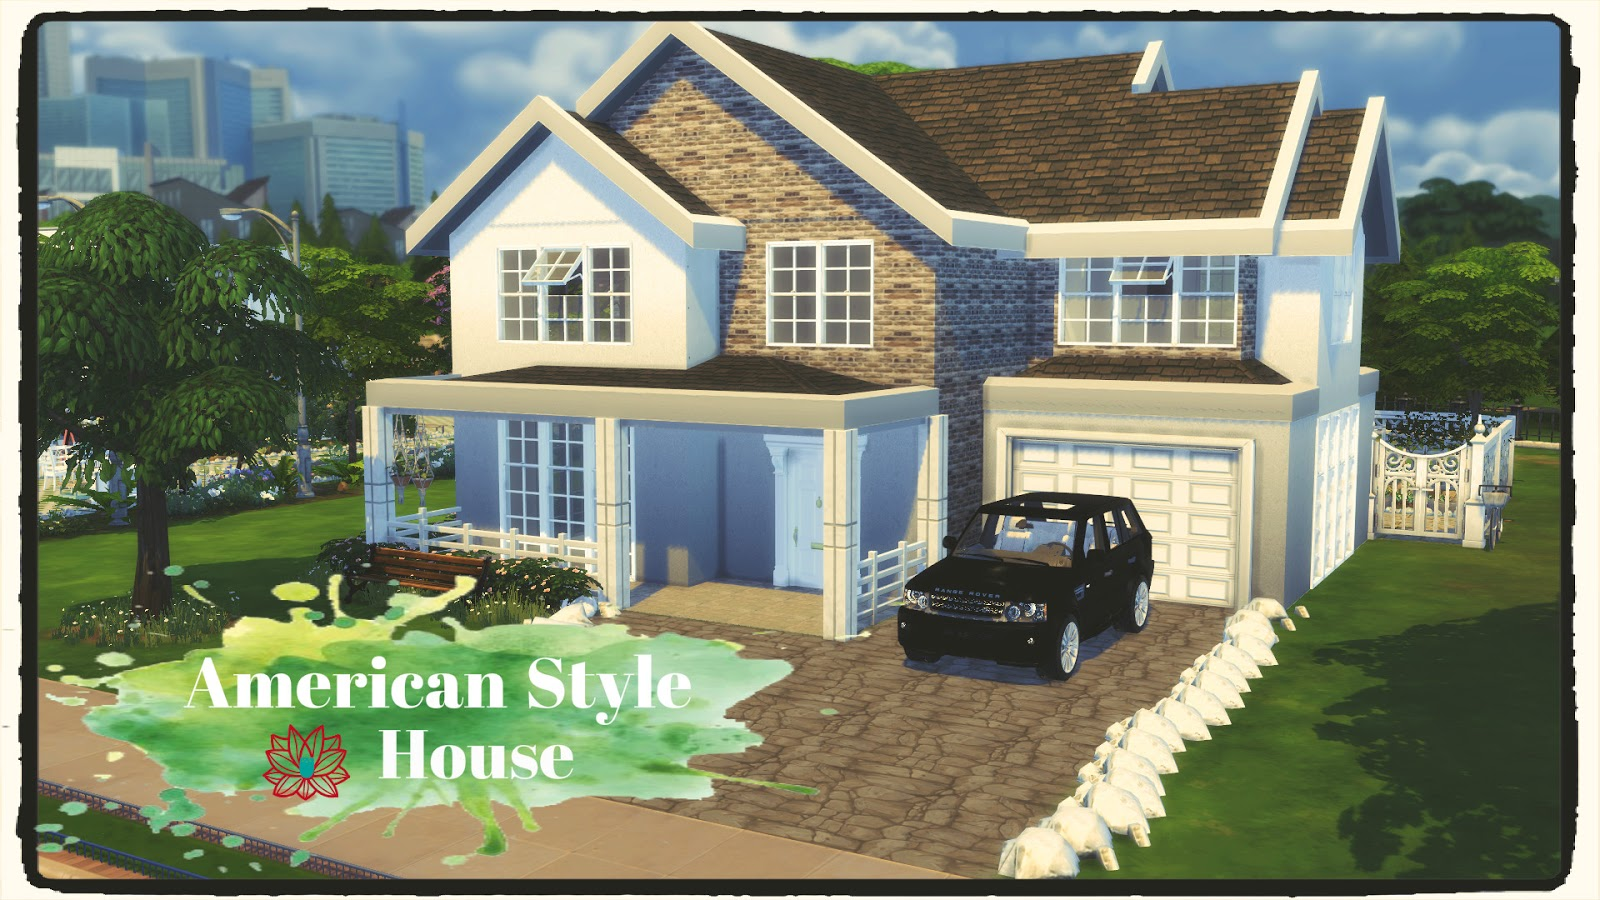 Sims 4 american style house build decoration dinha for Build a home